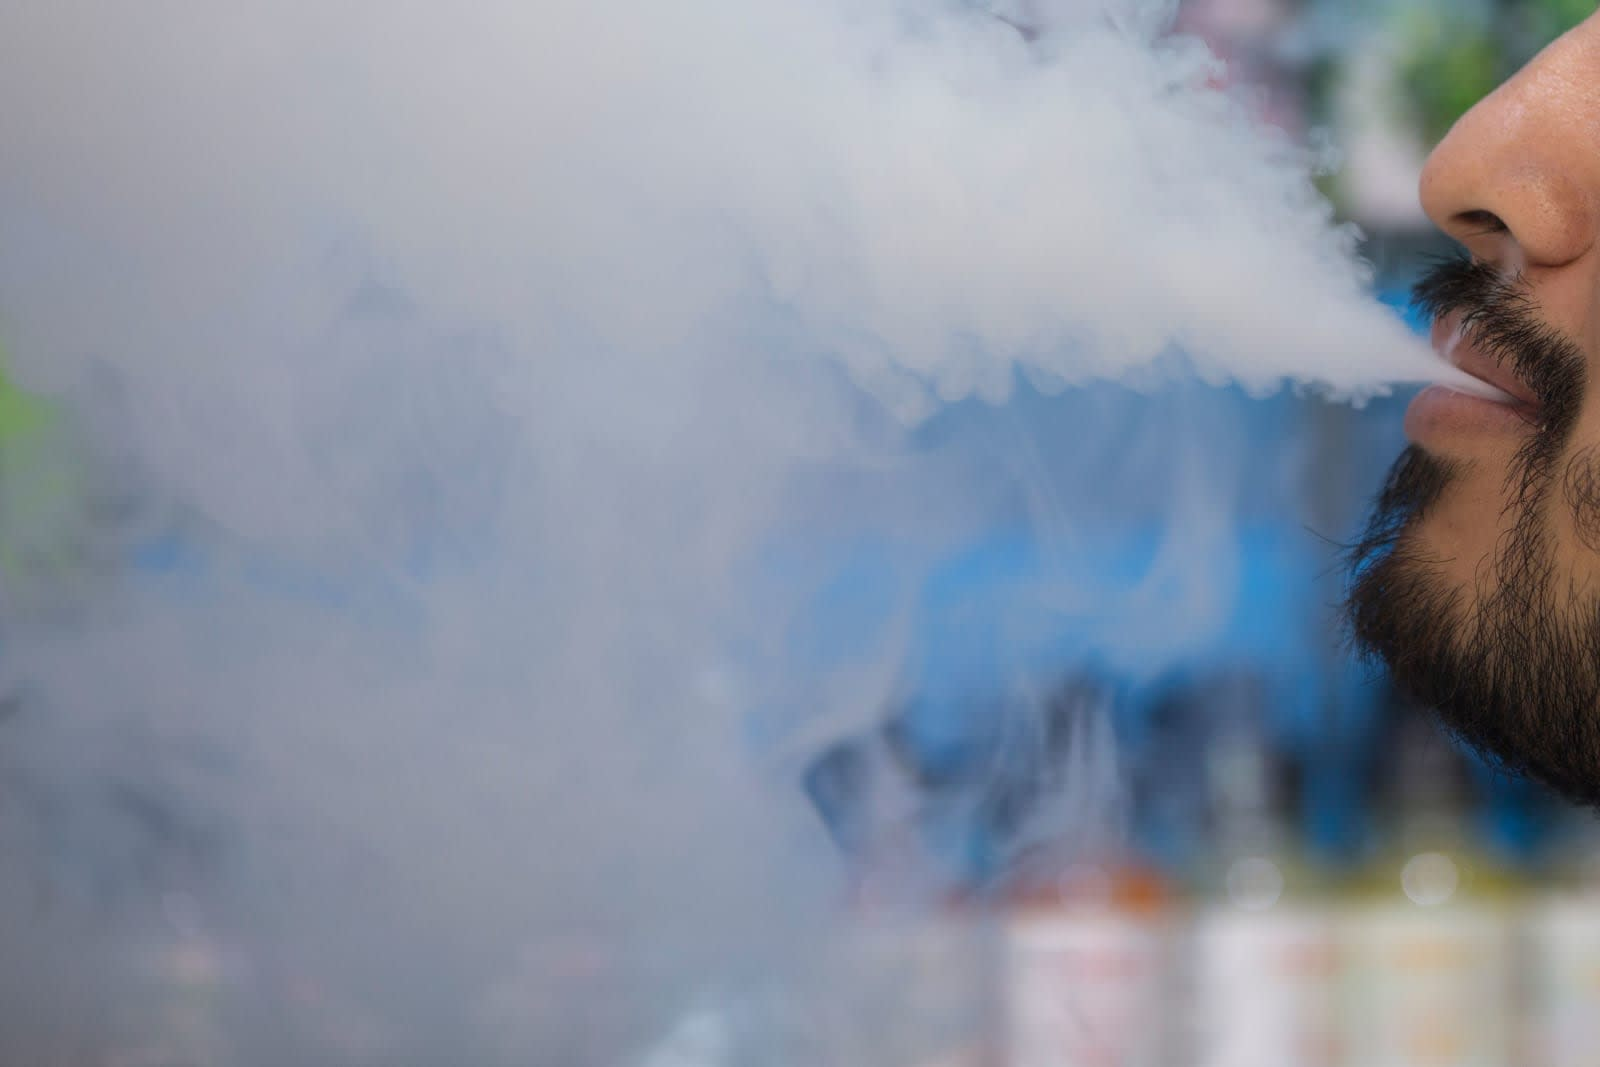 CDC identifies a death potentially linked to vaping